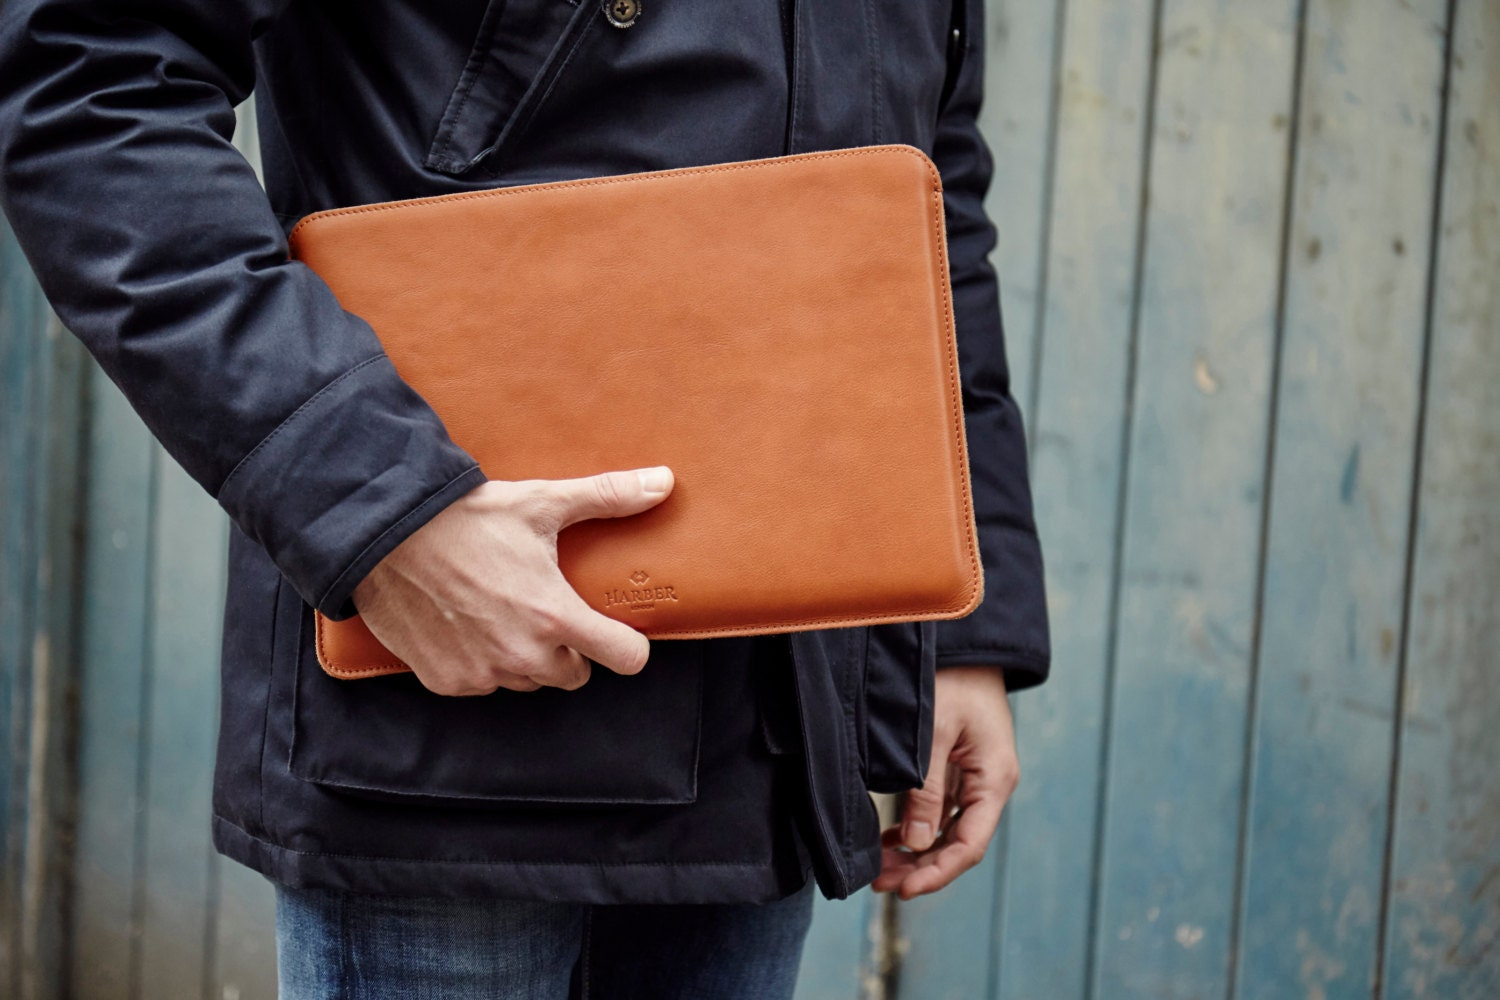 MacBook Air 13 Leather Sleeve Case and Wool Felt Laptop Cover Handmade